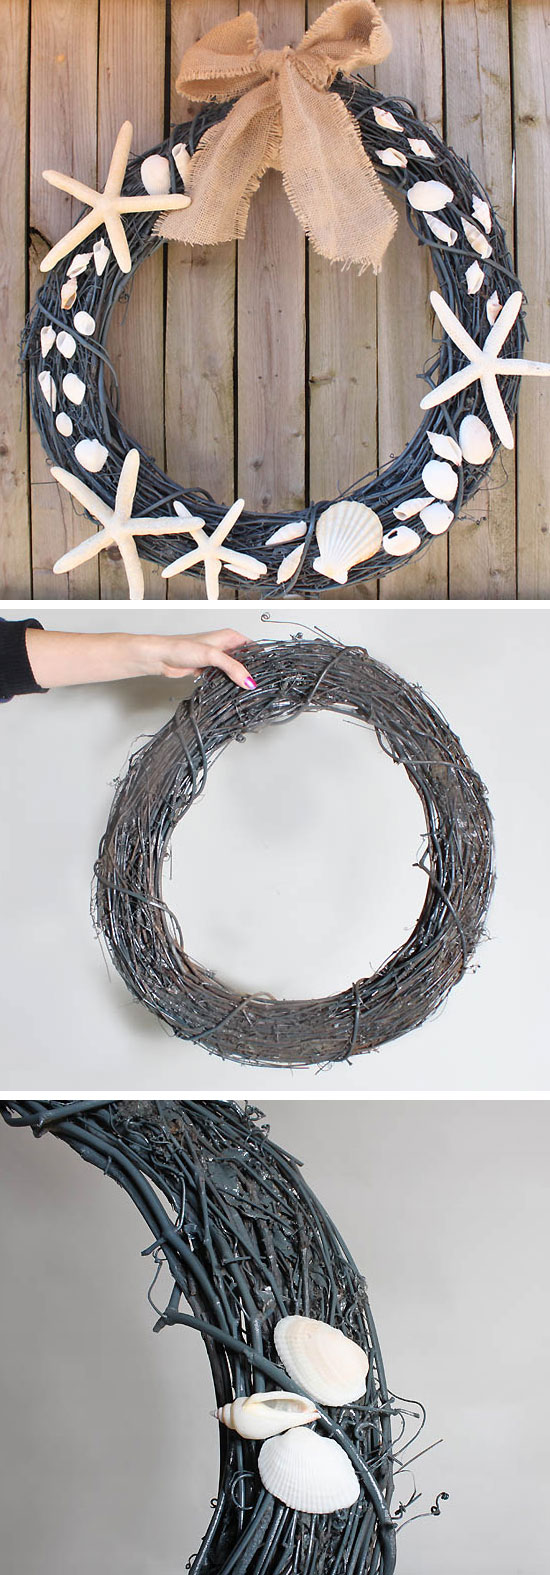 DIY Pottery Barn Shell Wreath.